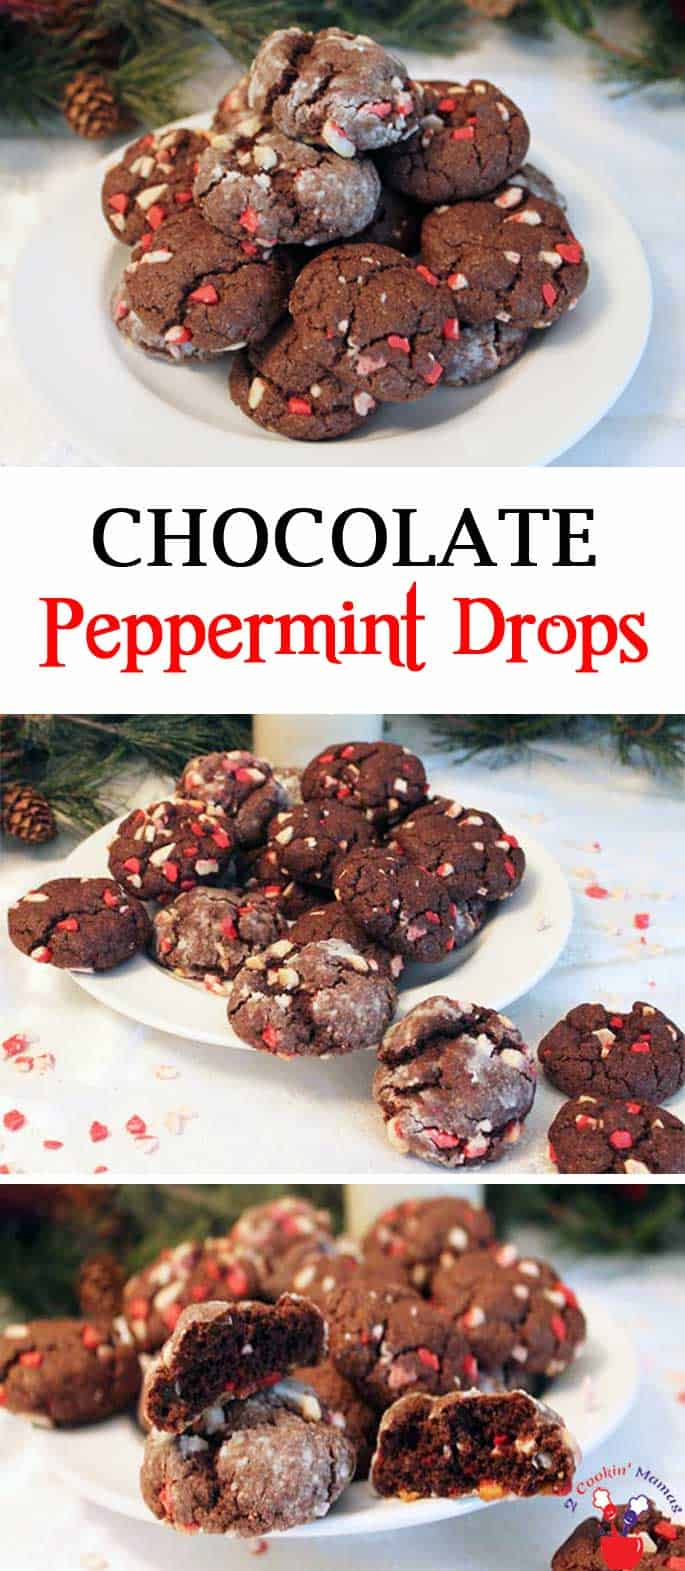 Chocolate Peppermint Drops | 2 Cookin Mamas Easy to make cookies that start with a cake mix. Just add 3 ingredients for rich chocolaty, minty cookies. Perfect for the season! #recipe